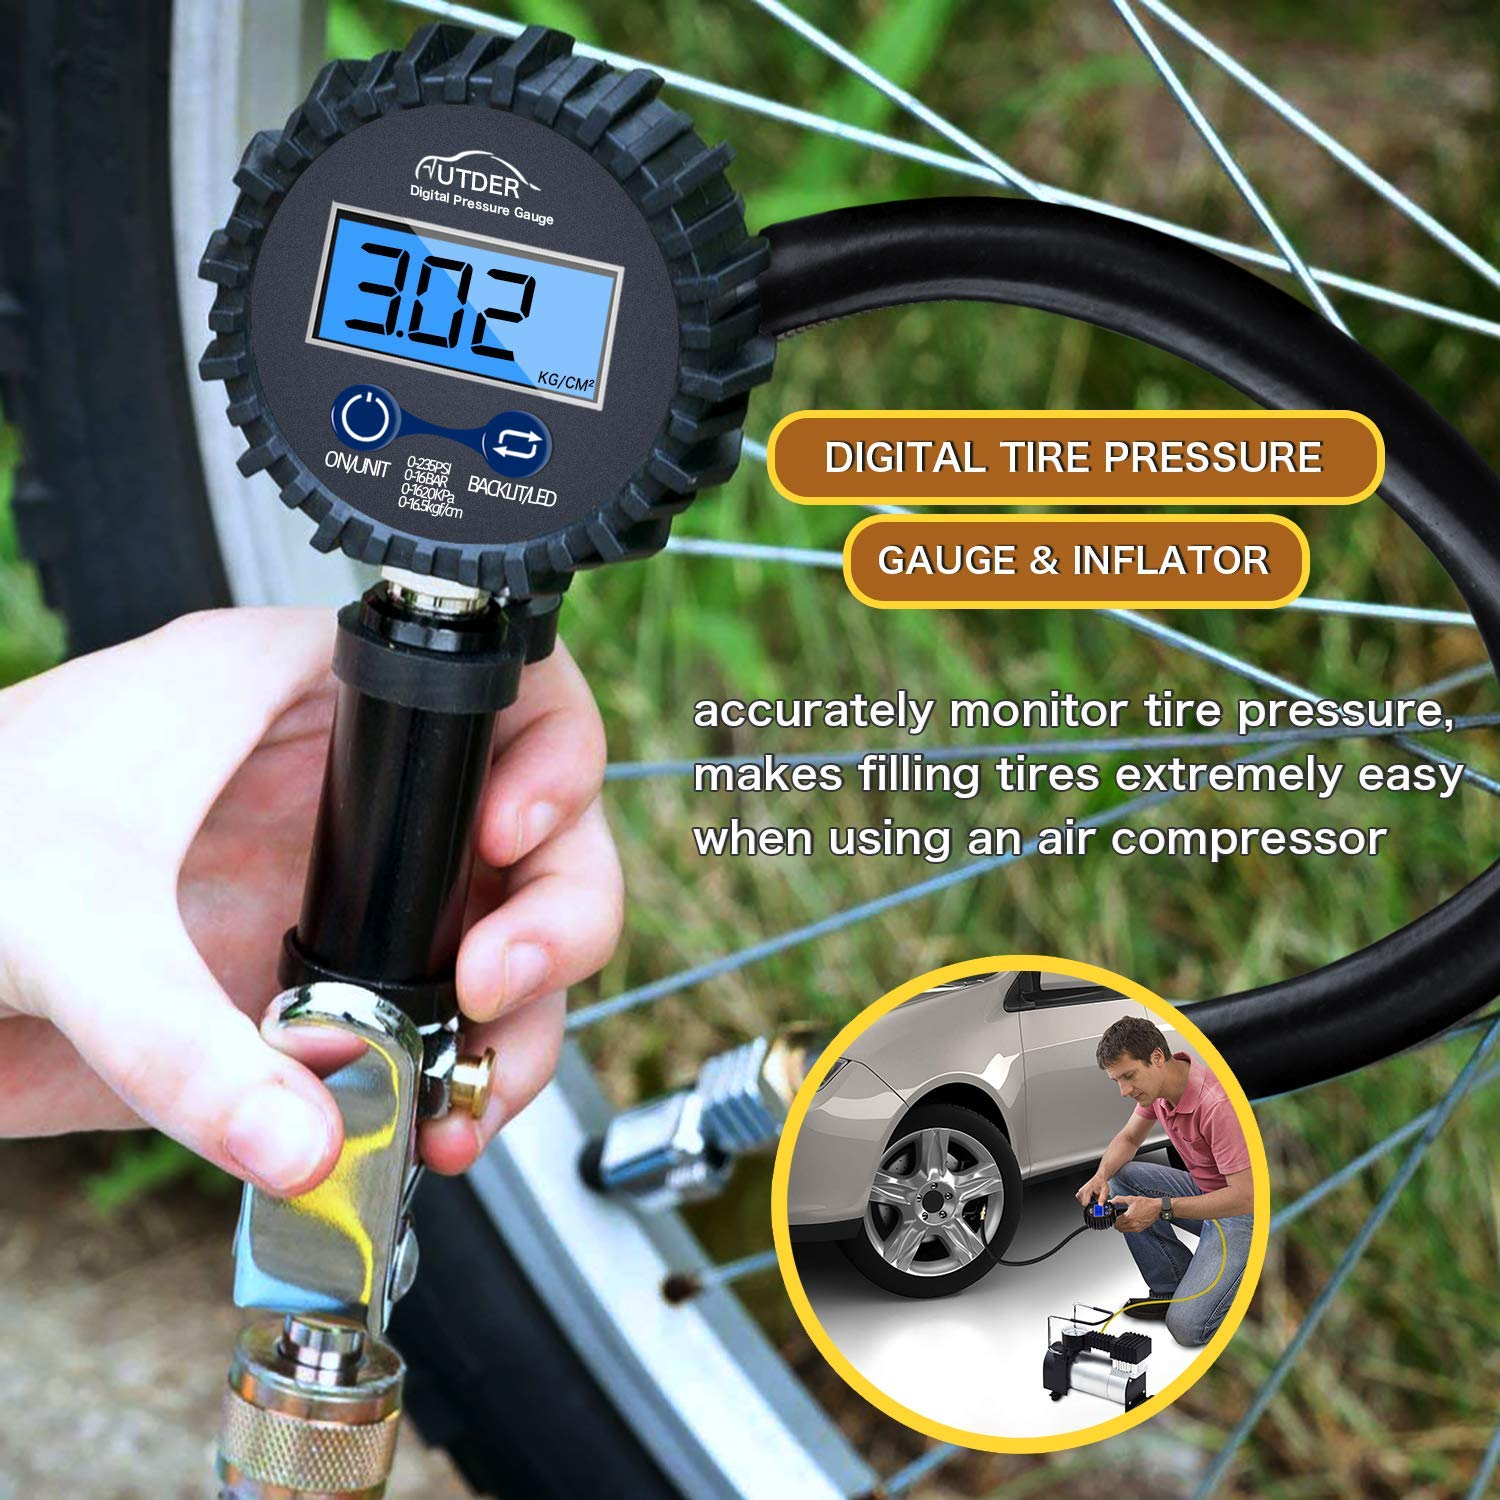 AUTDER Digital Tire Pressure Gauges 235 PSI Air Compressor Accessories with Backlit LCD and Non-Slip Grip